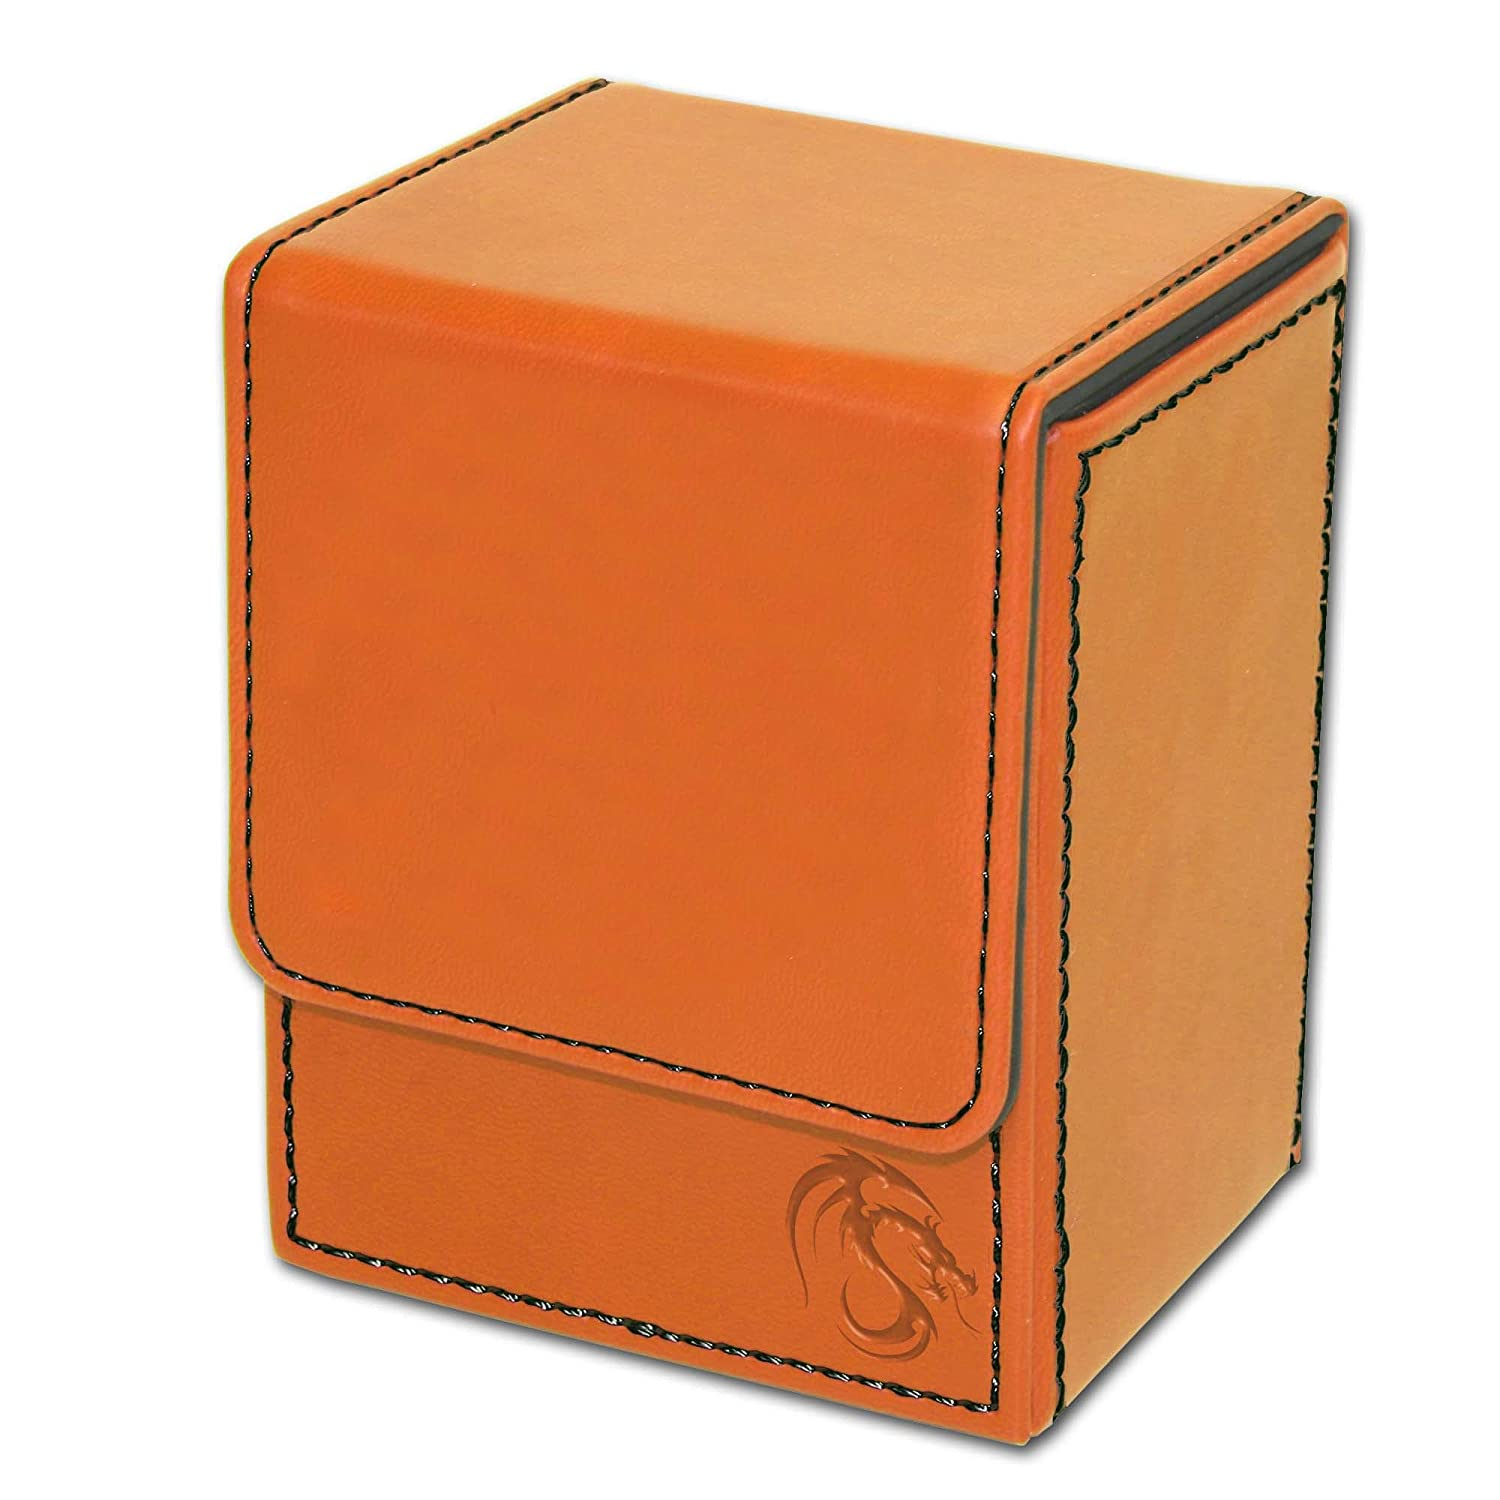 Portamazo Naranjo LX Deck Case Orange BCW